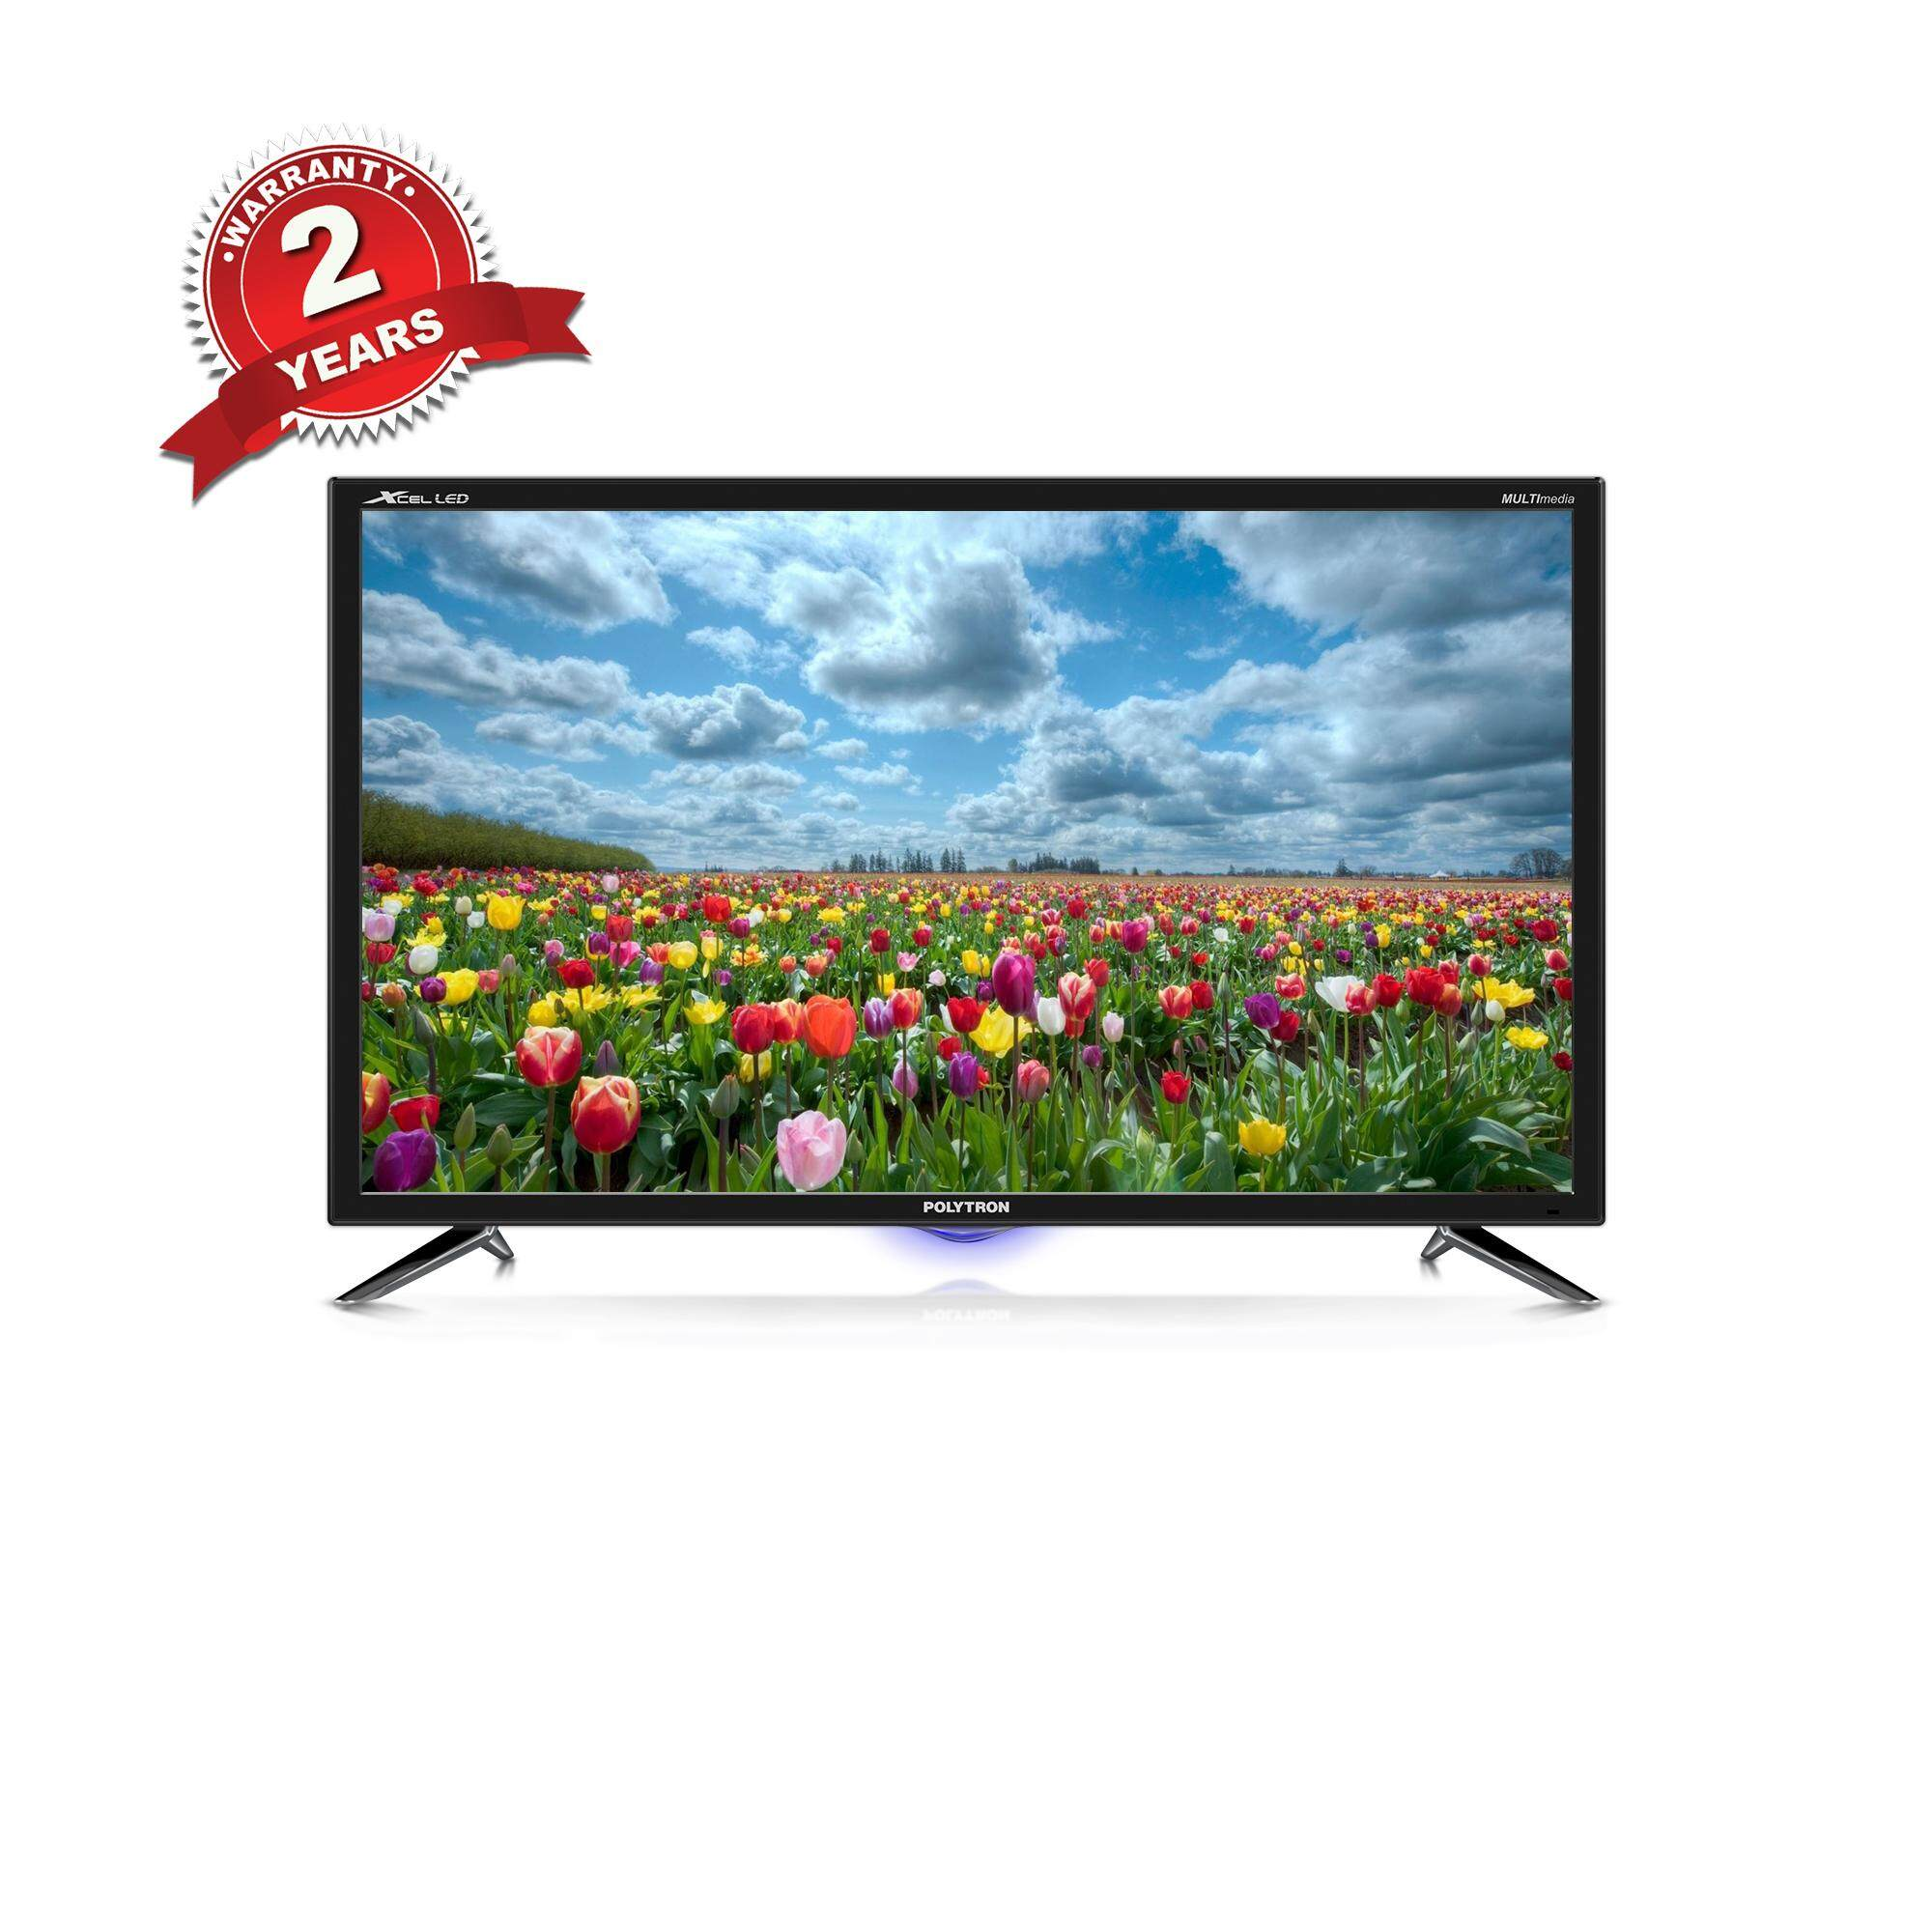 "POLYTRON LED TV 32"" ANALOG รุ่น PLD 32D710 ."